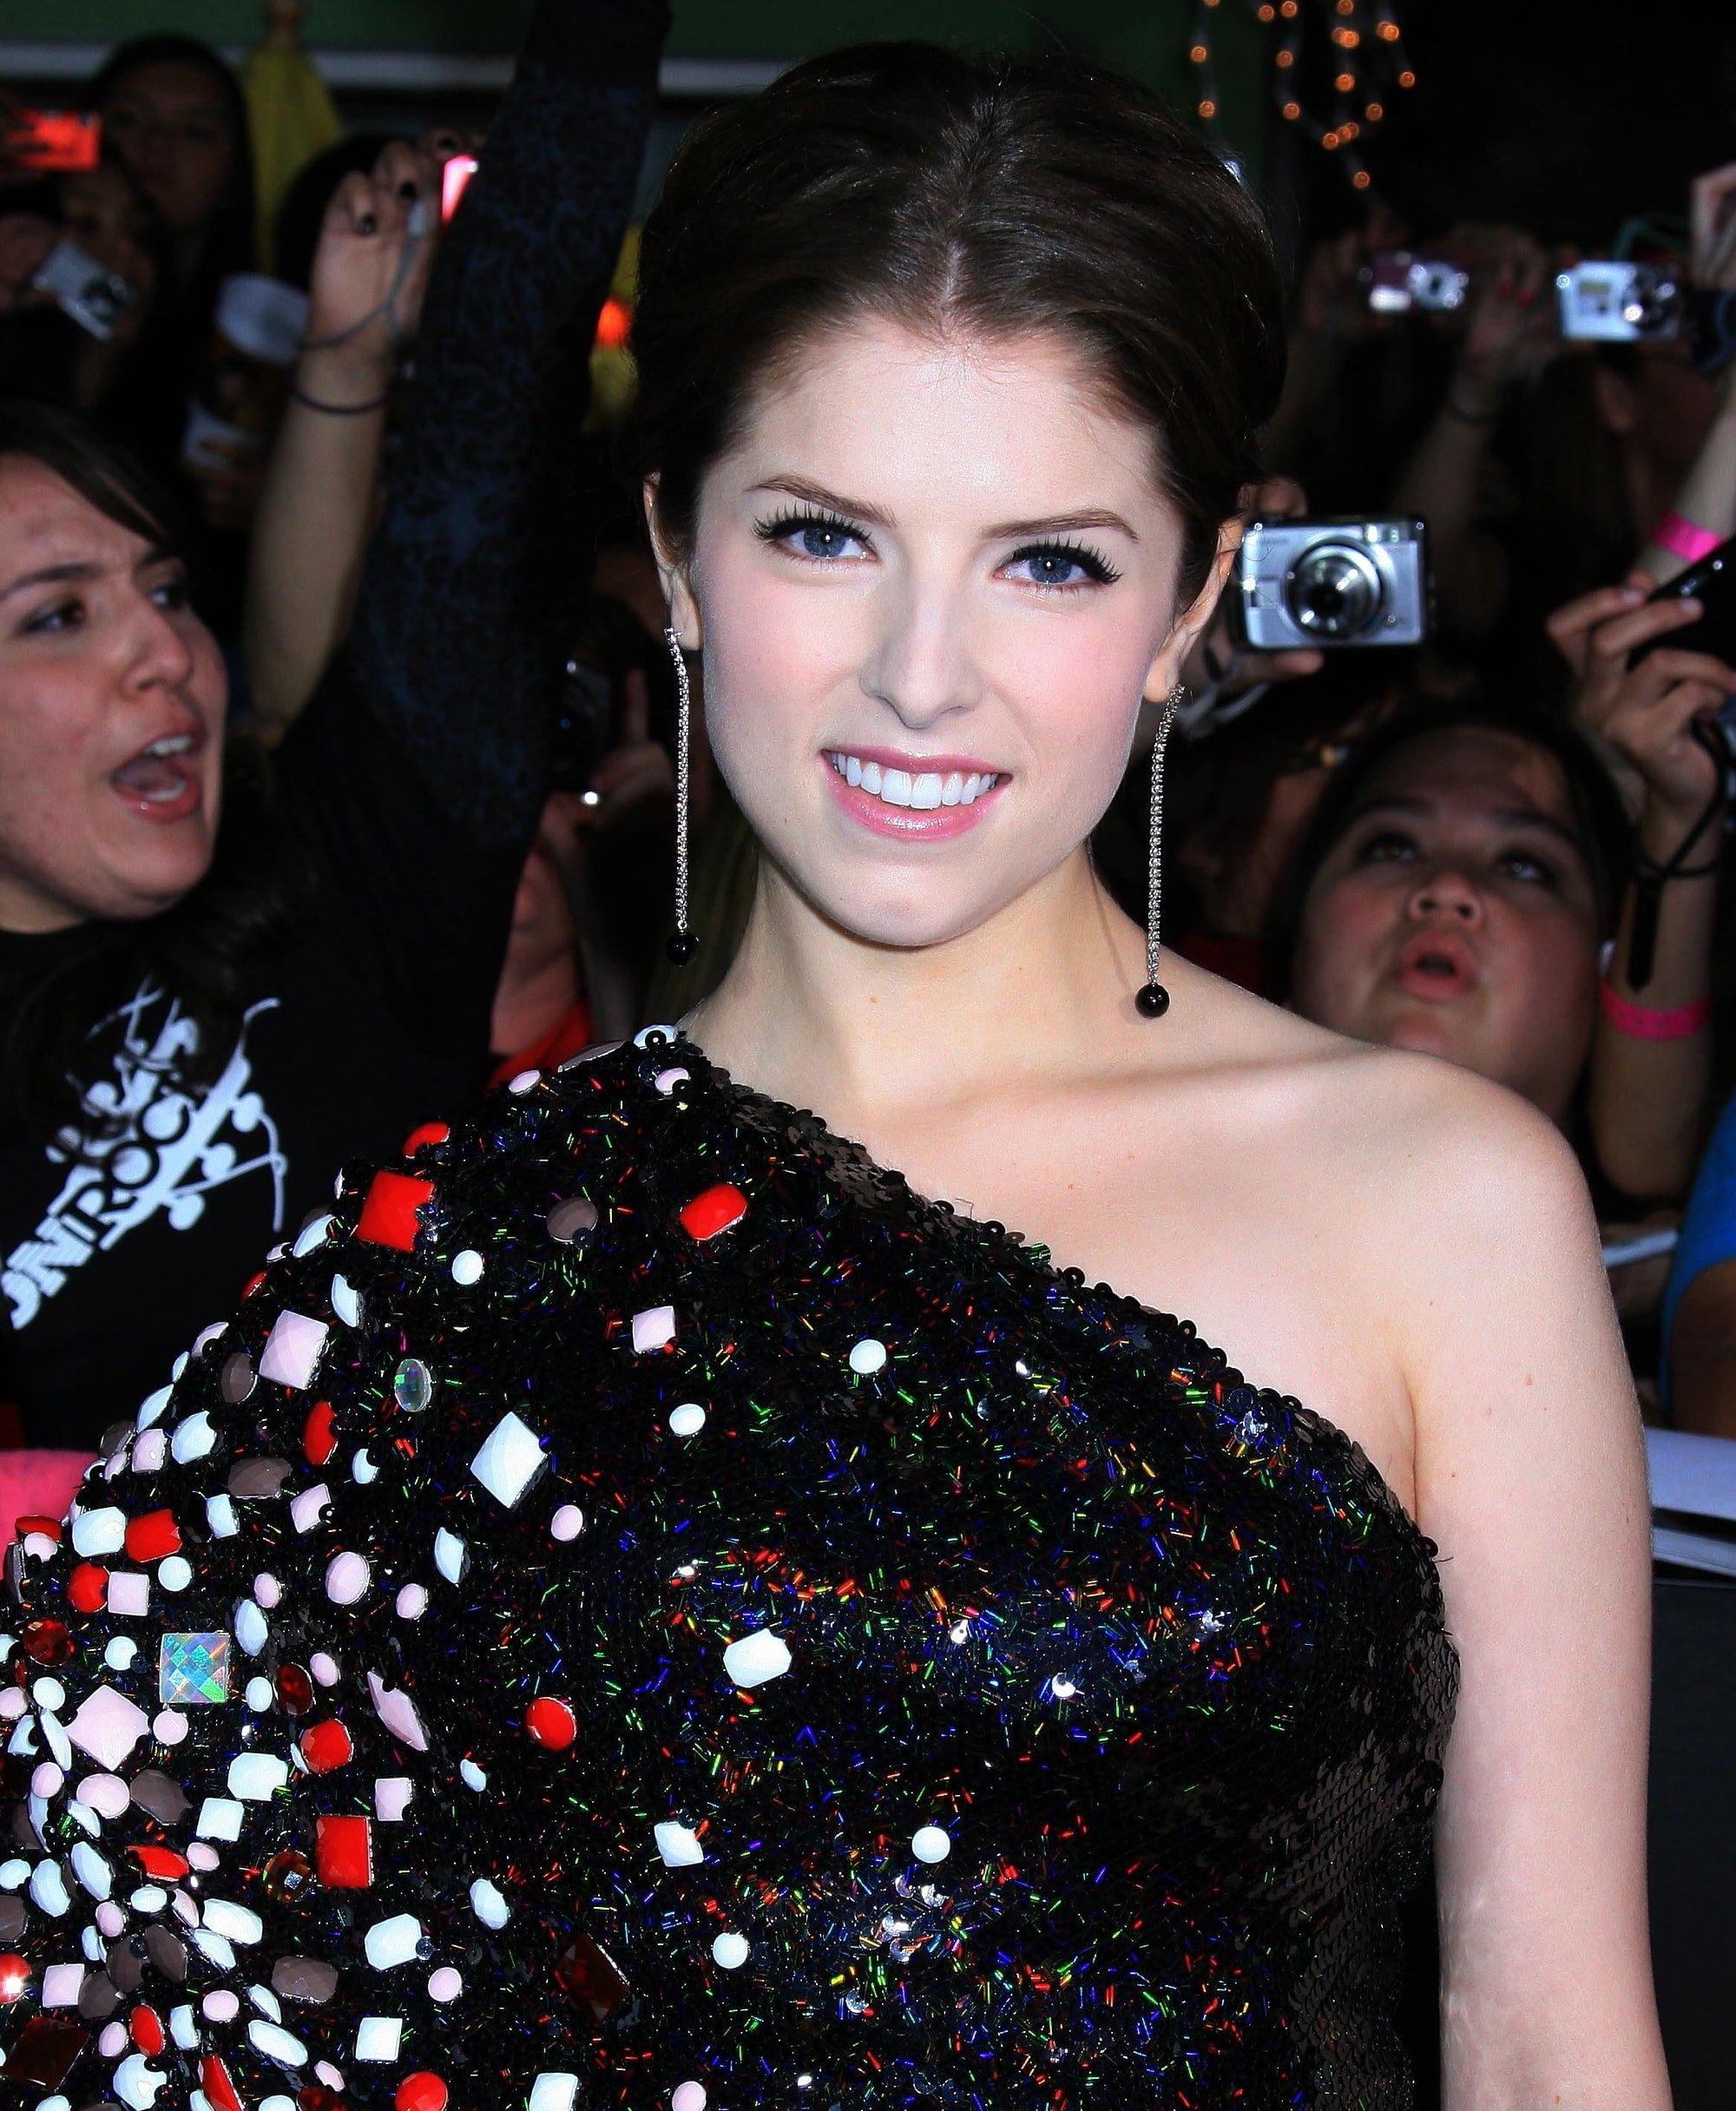 """Actress Anna Kendrick smiling at the premiere of Summit Entertainment's """"The Twilight Saga: New Moon"""""""